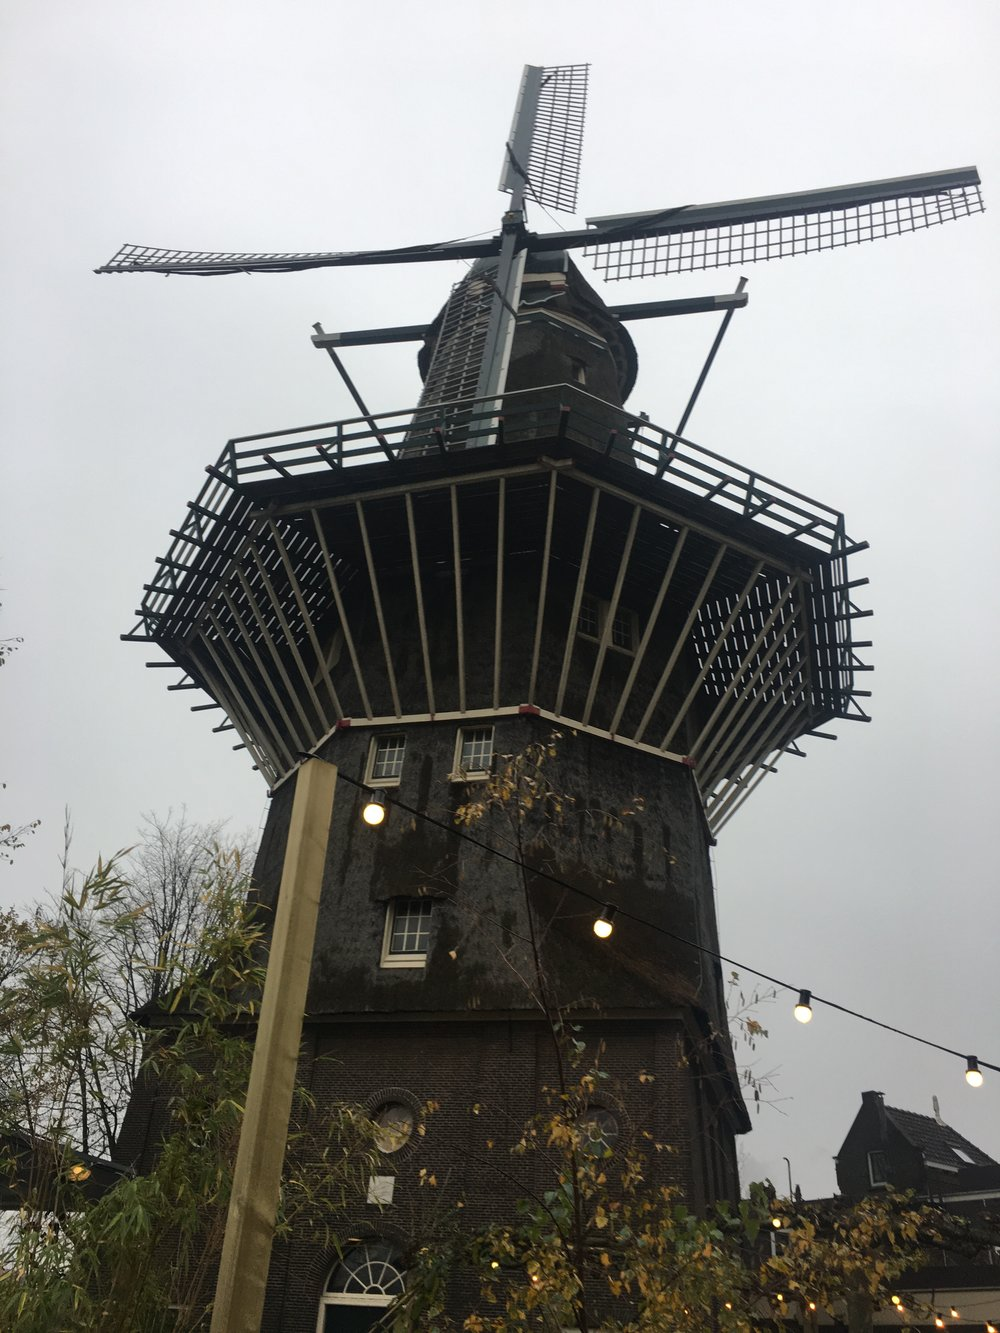 Brouwerij 't IJ in an old windmill